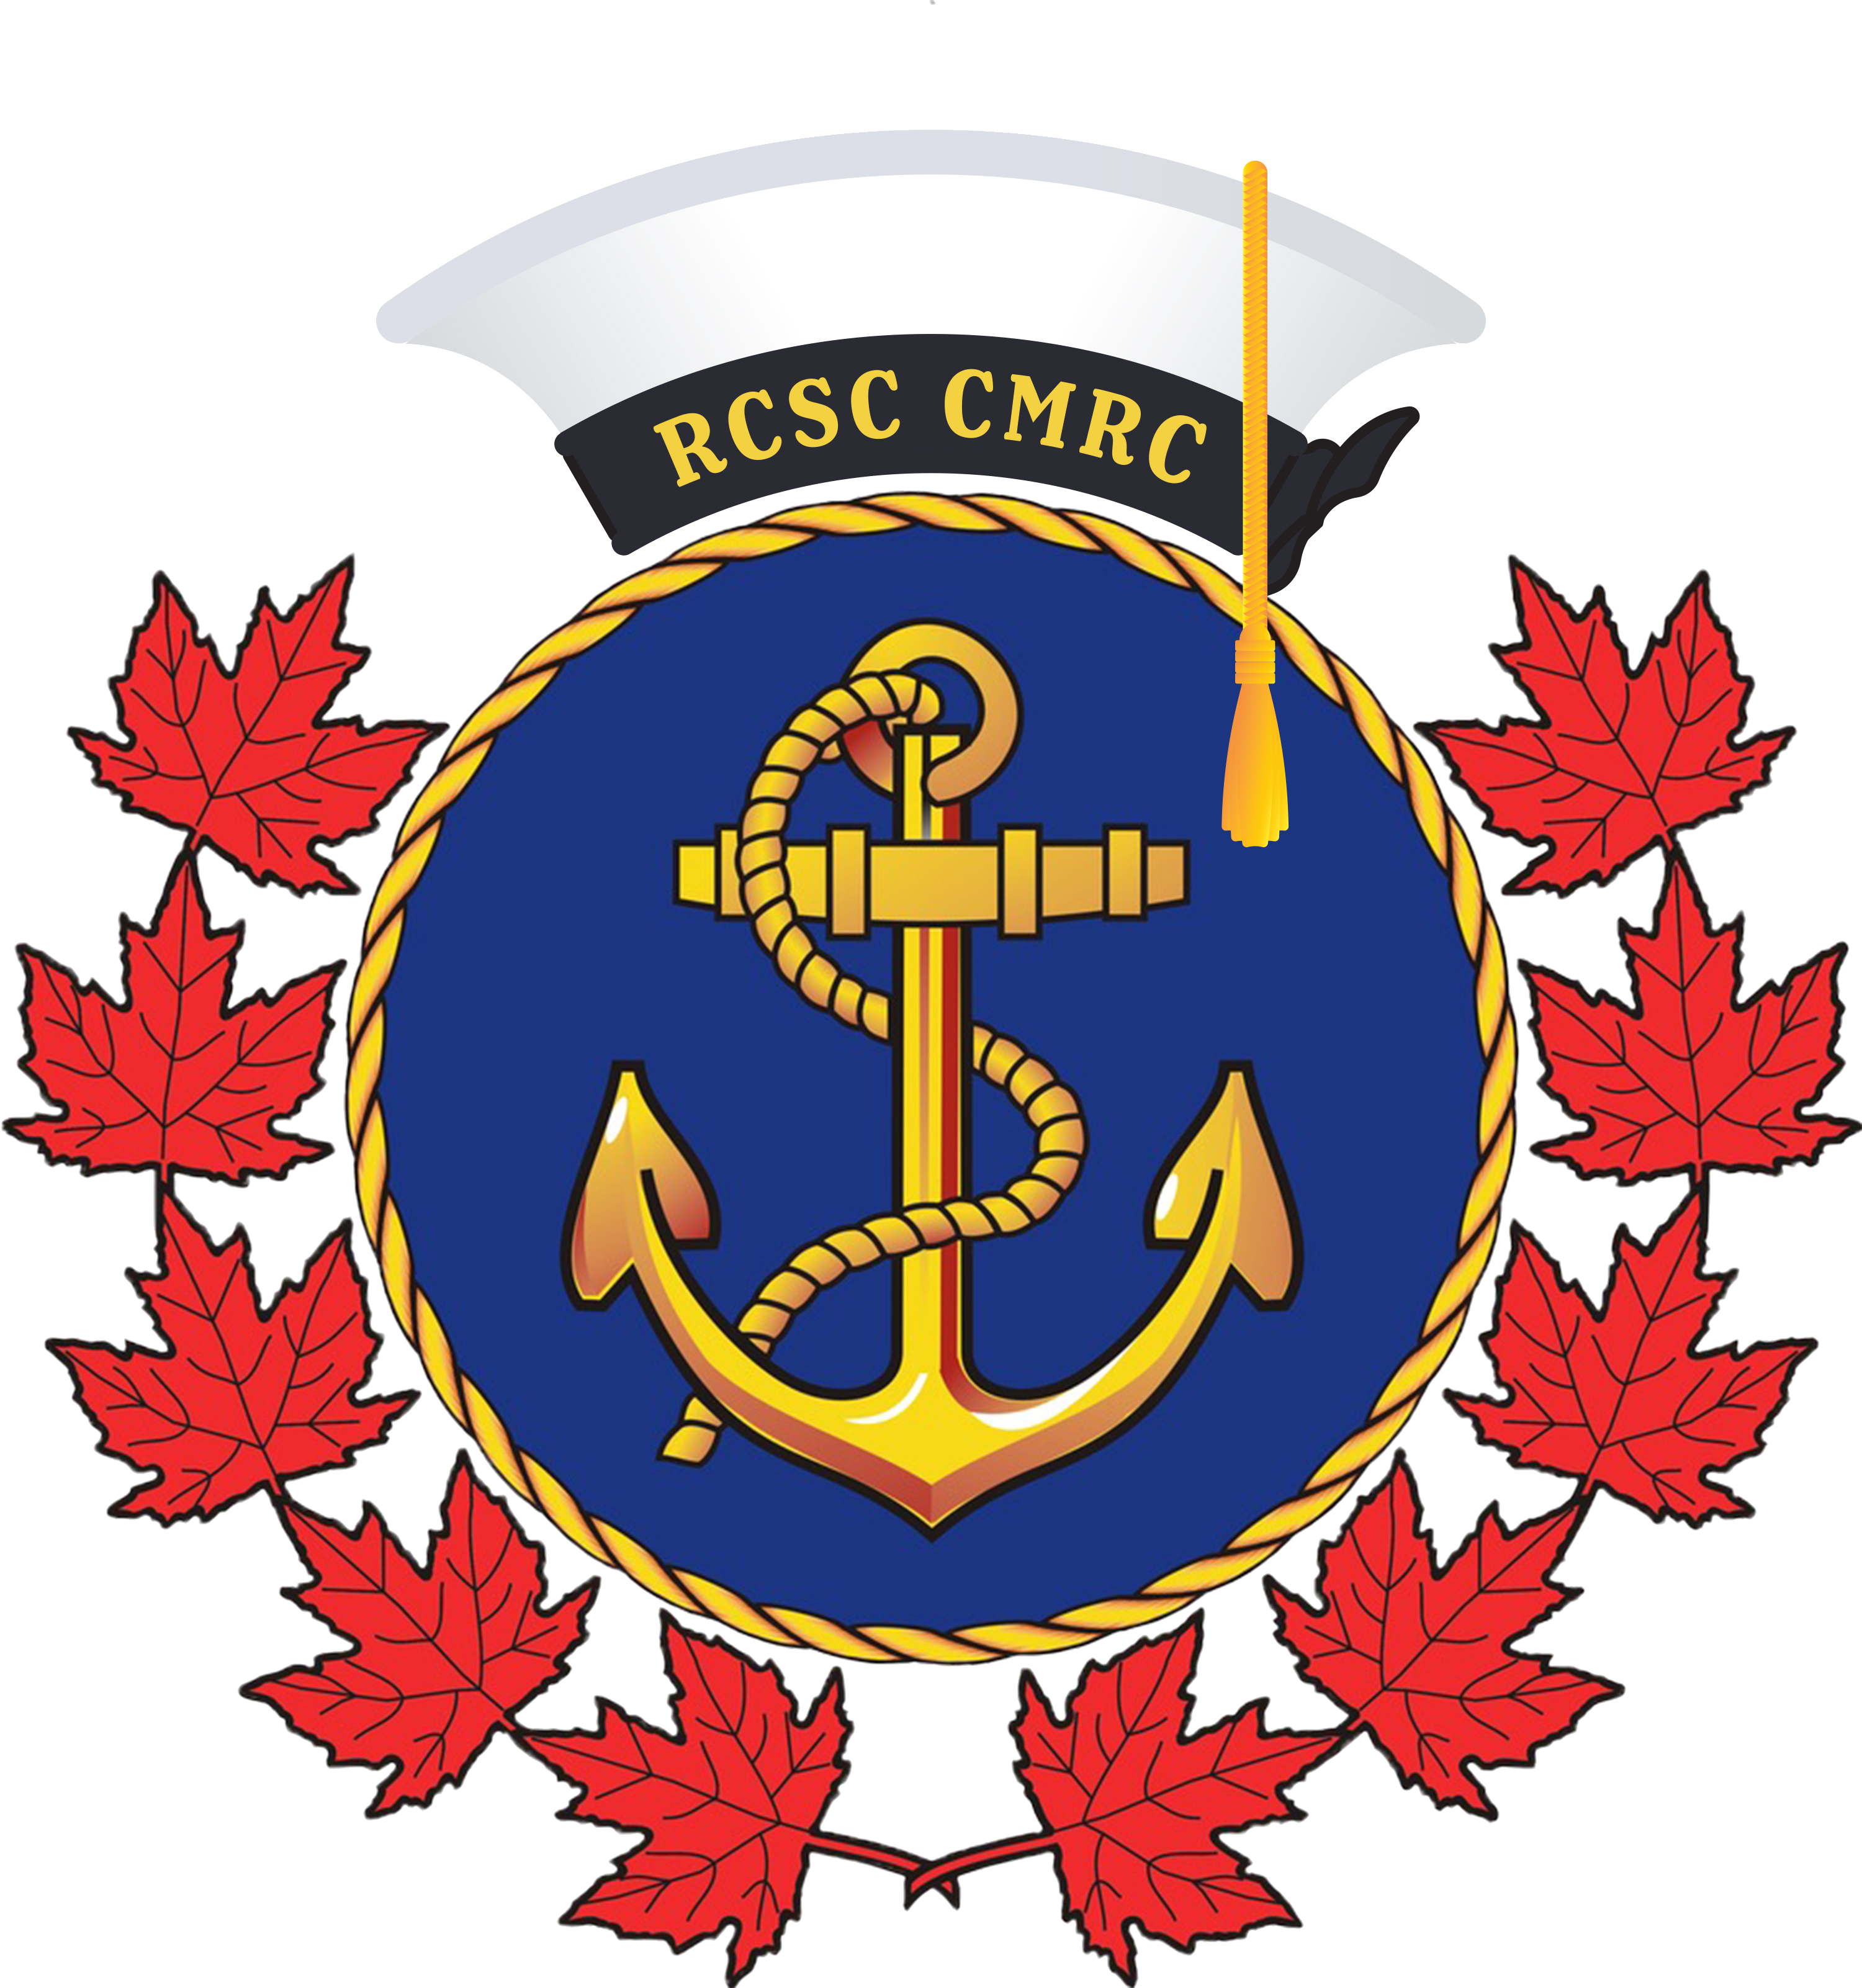 The Royal Canadian Sea Cadet Scholarship Foundation